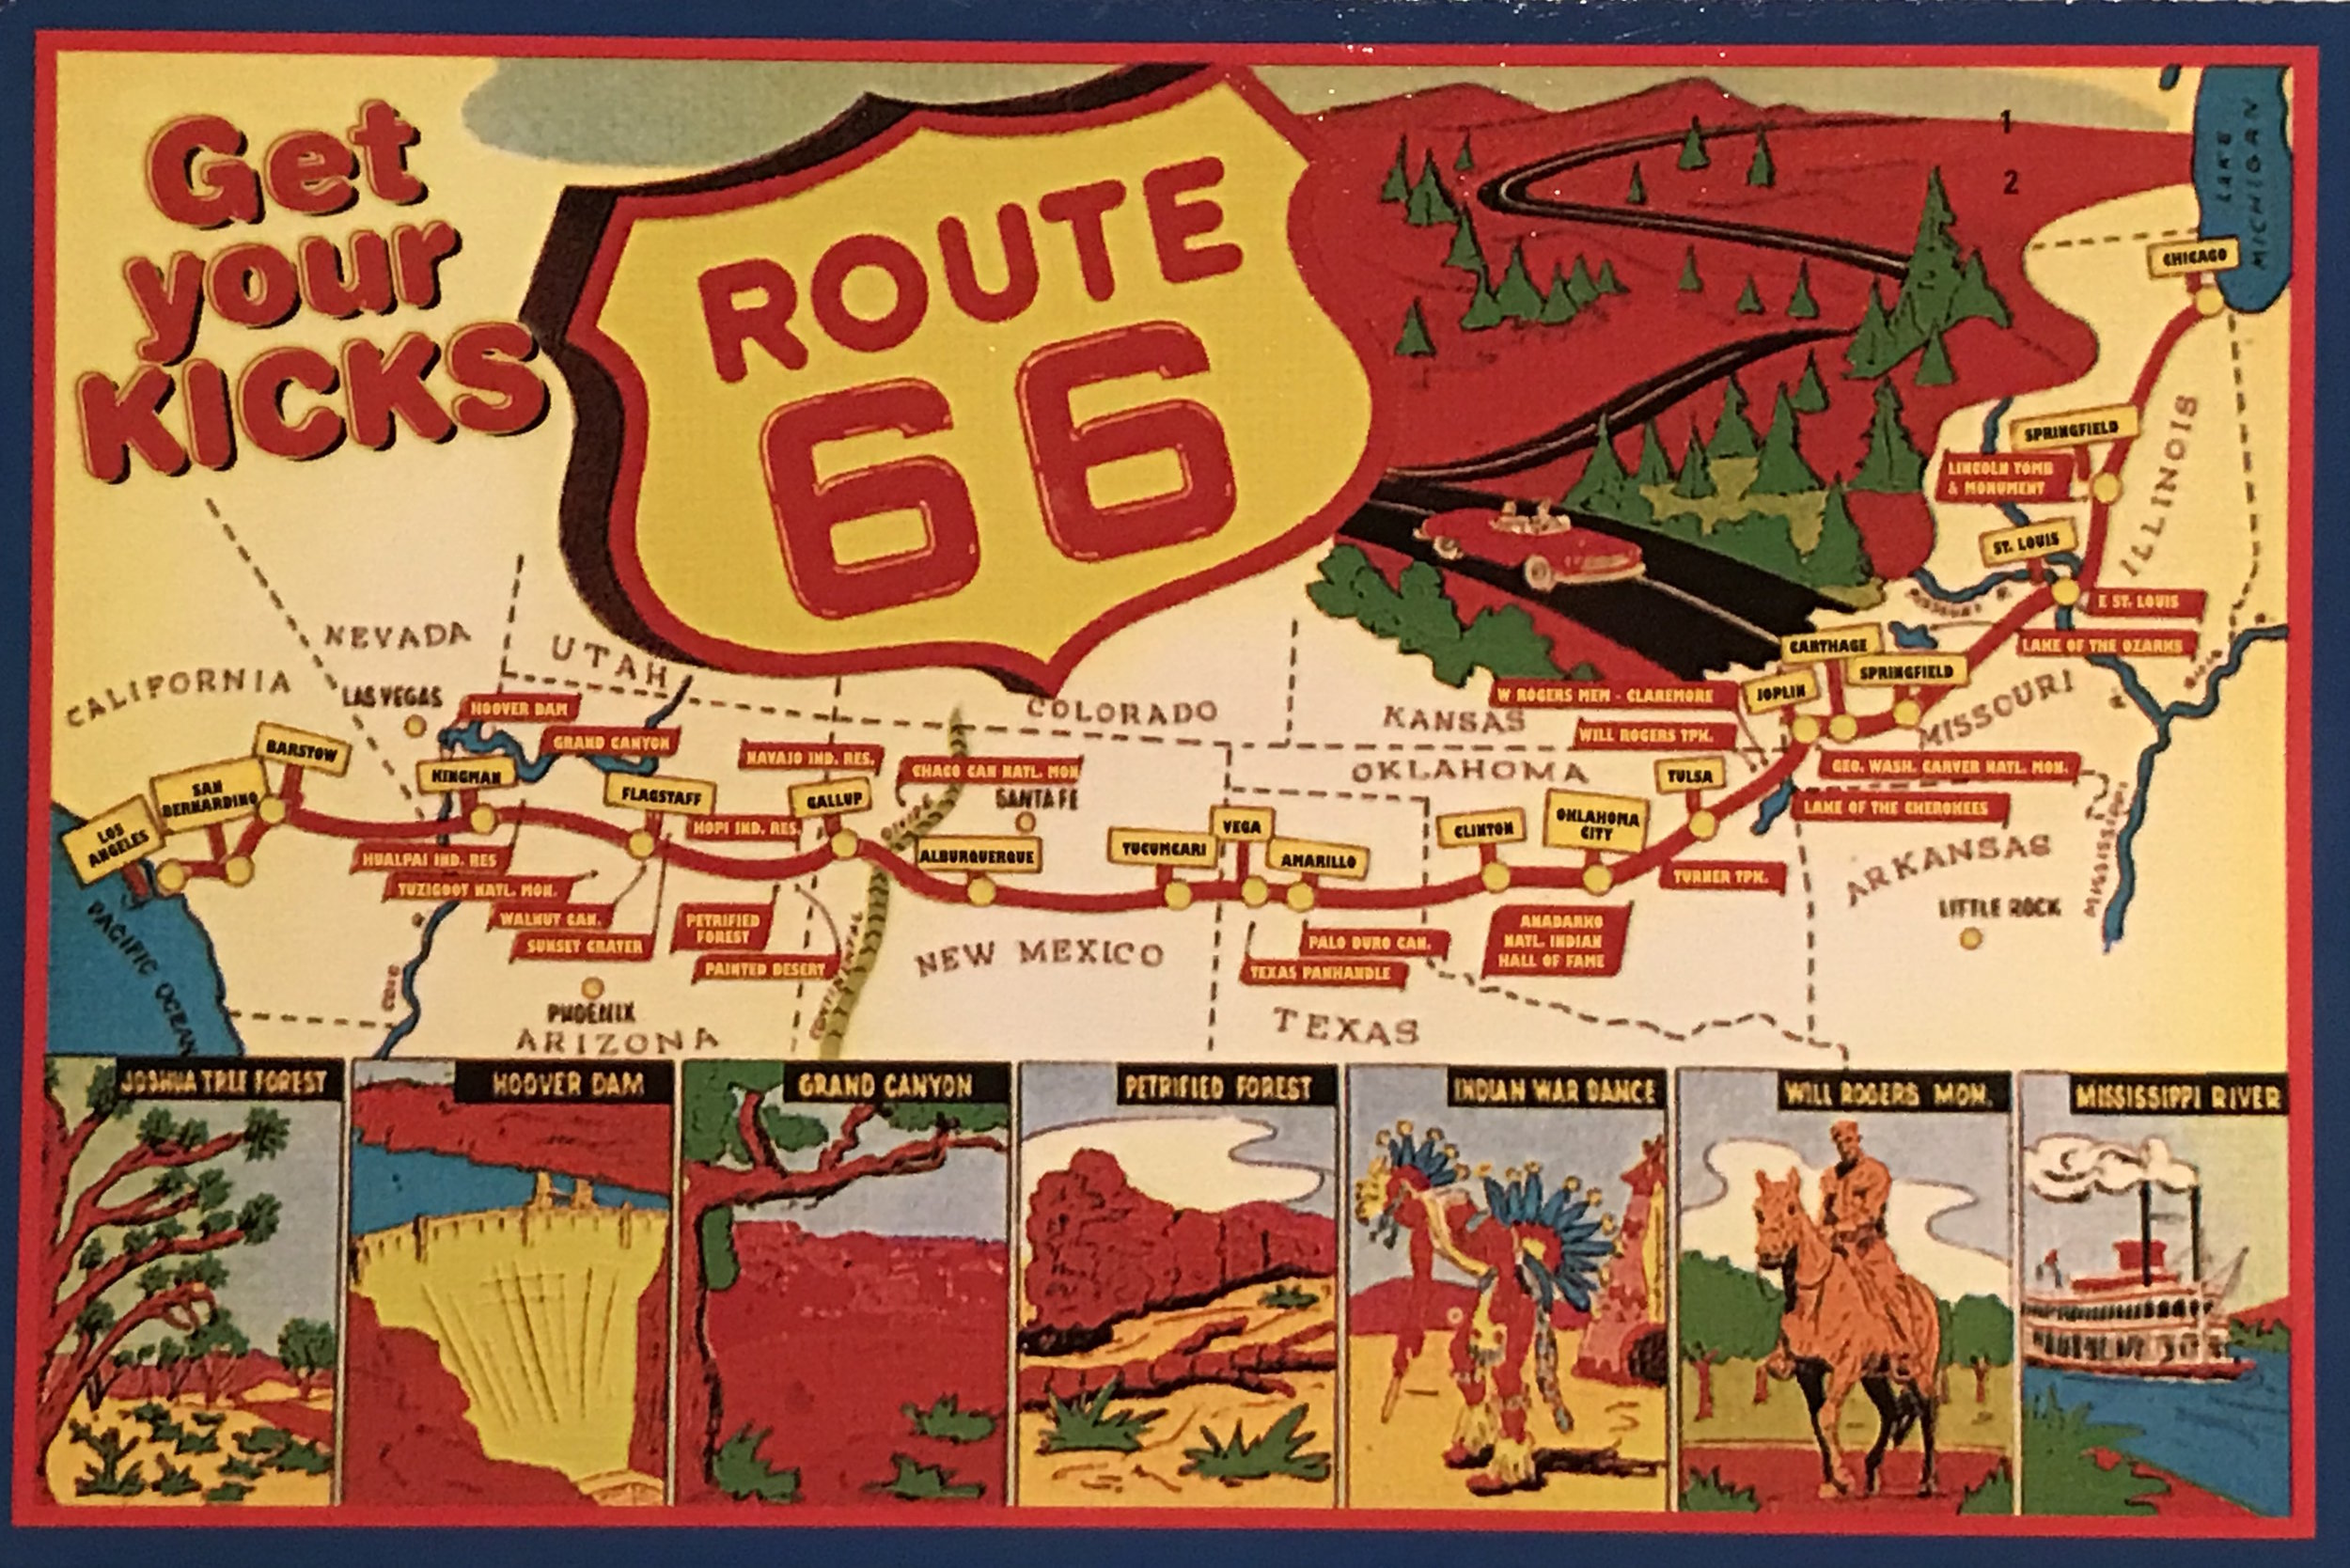 A vintage postcard shows the route of the now-defunct Route 66.